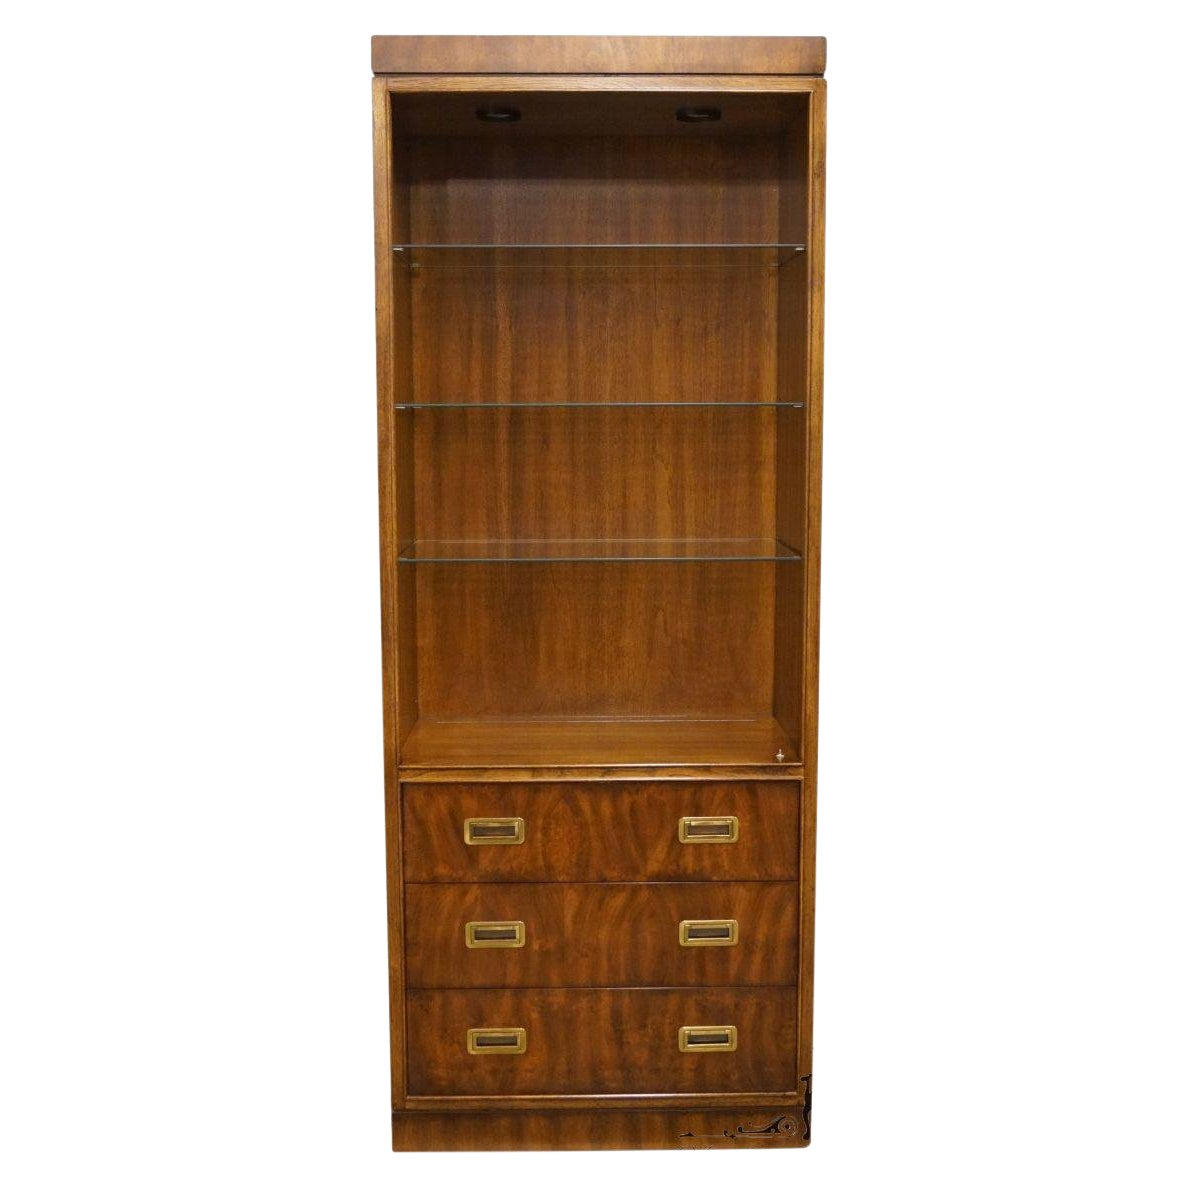 Drexel heritage dynasty collection campaign style 30 bookcase wall unit 017 716 chairish